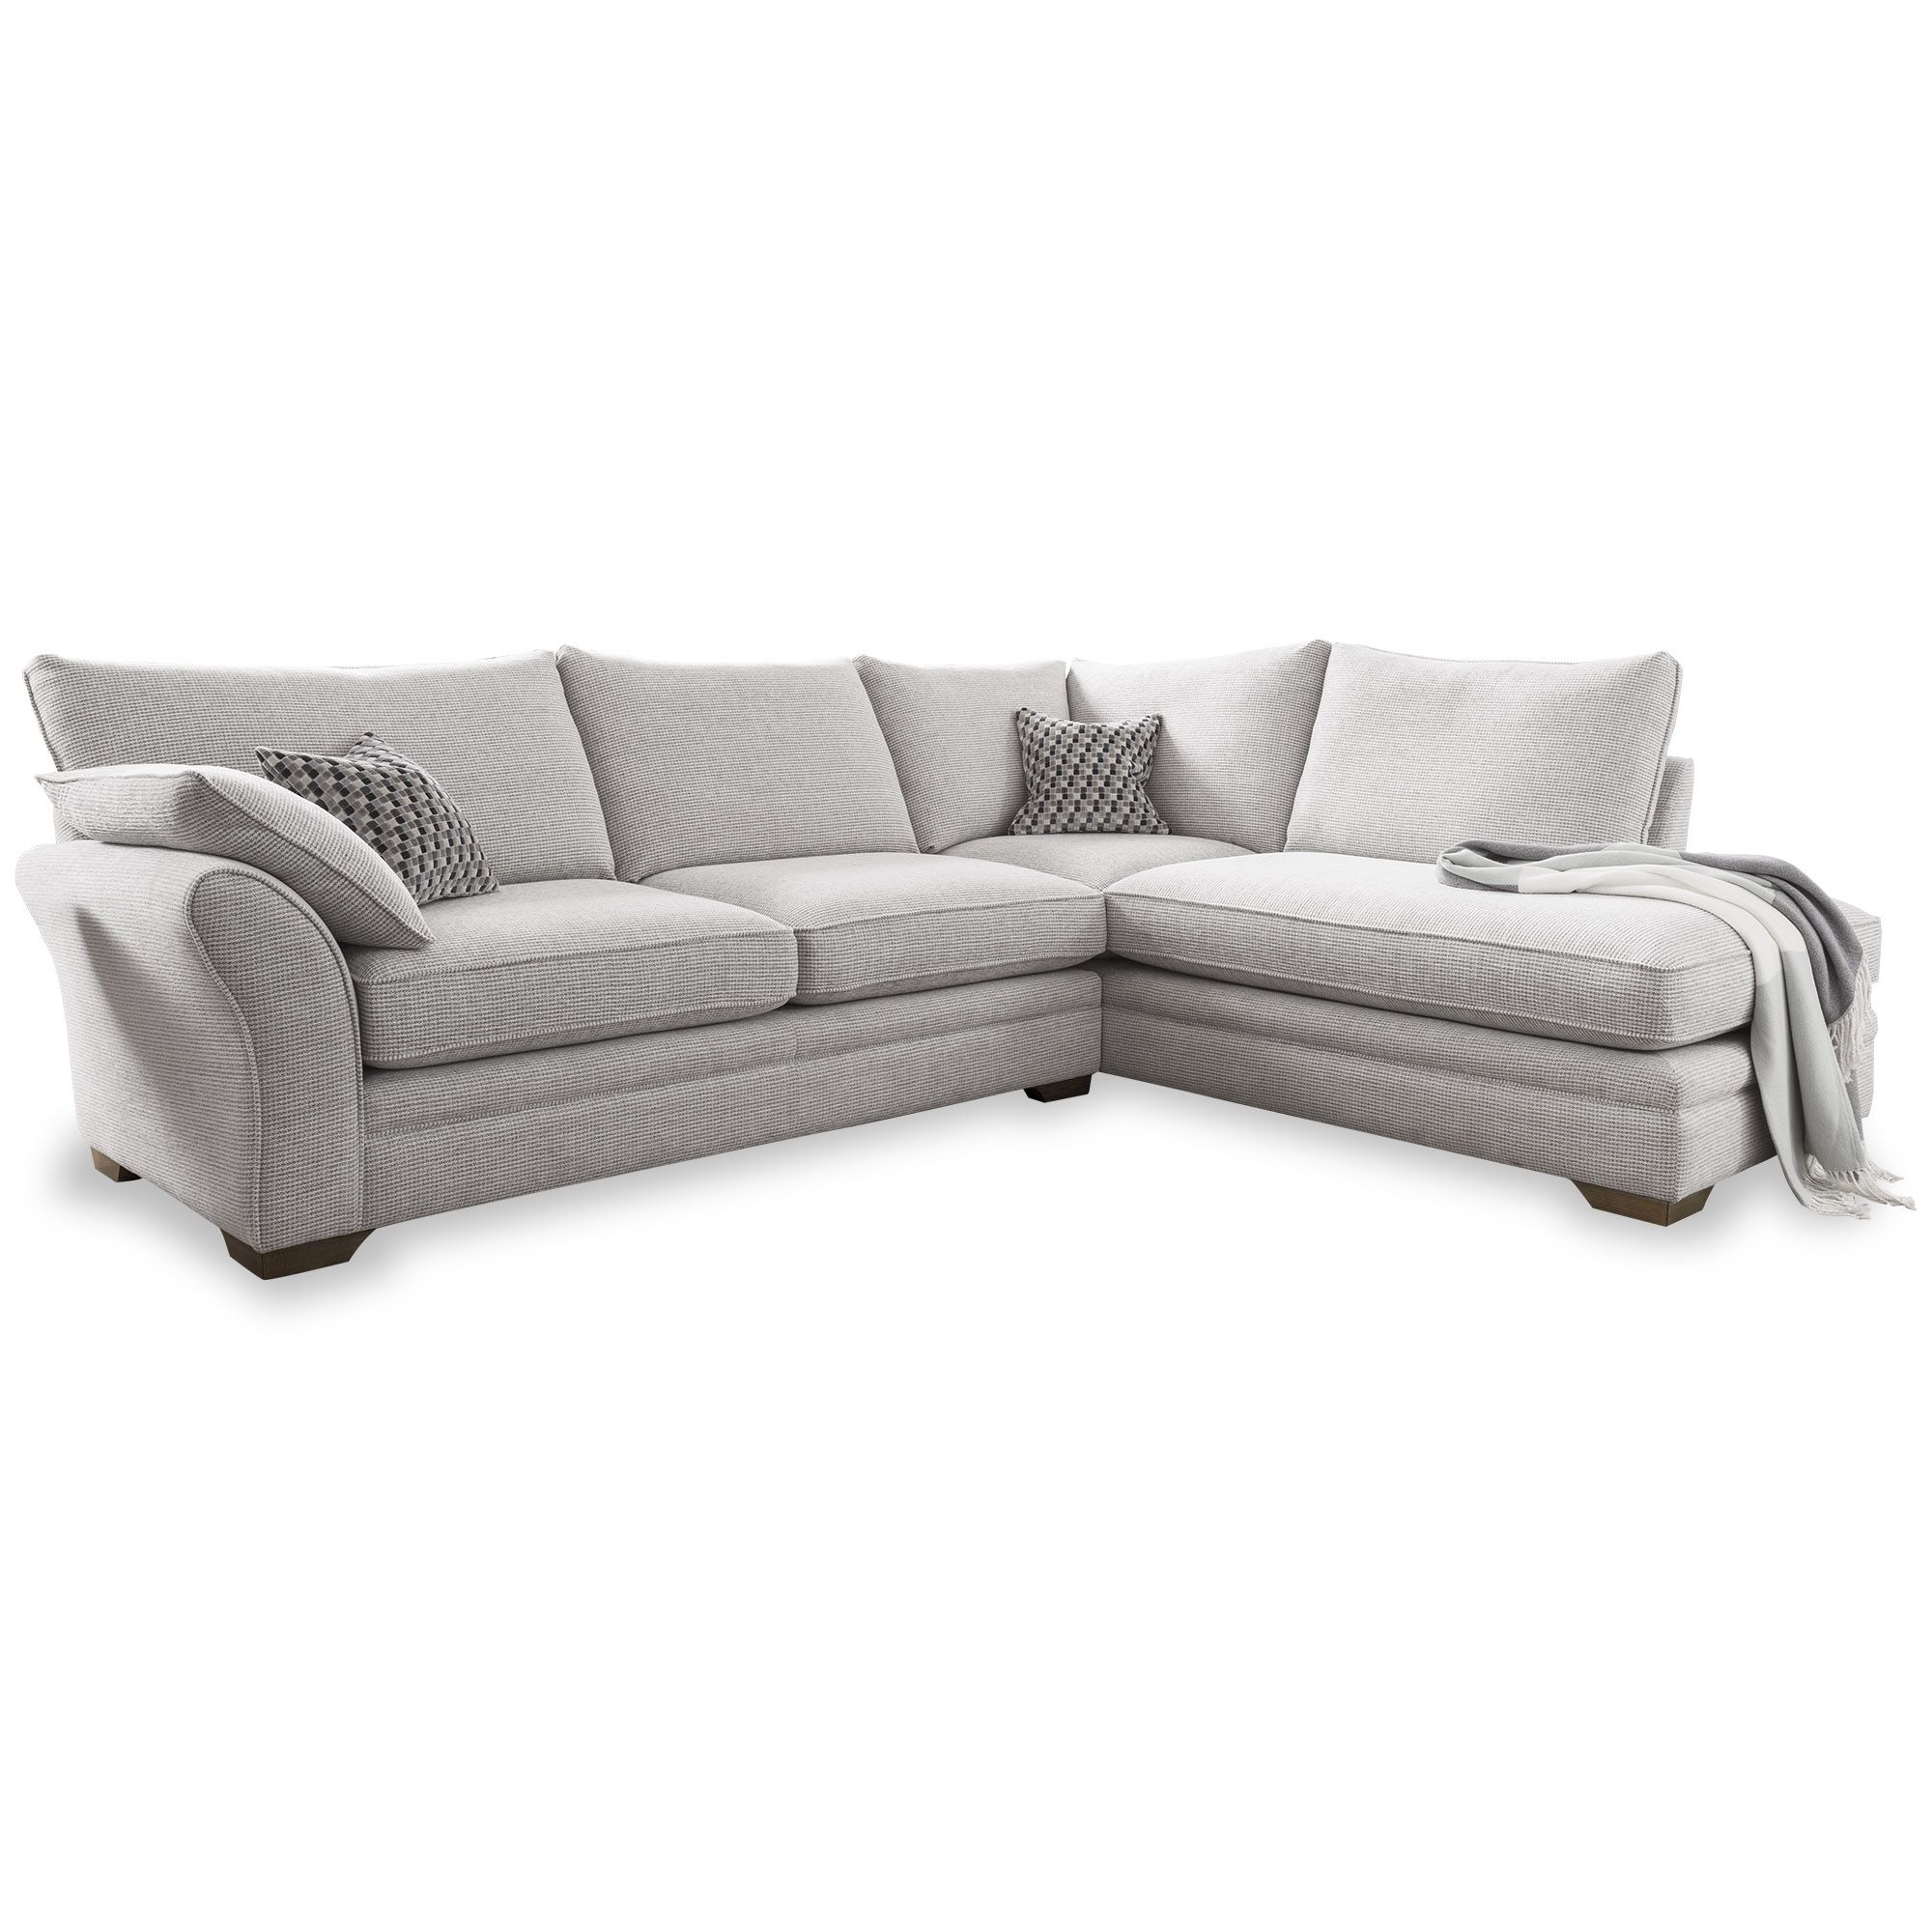 Meubles Fraser Furniture Solano 4 Corner Sofa With Chaise Lhf Fabric C